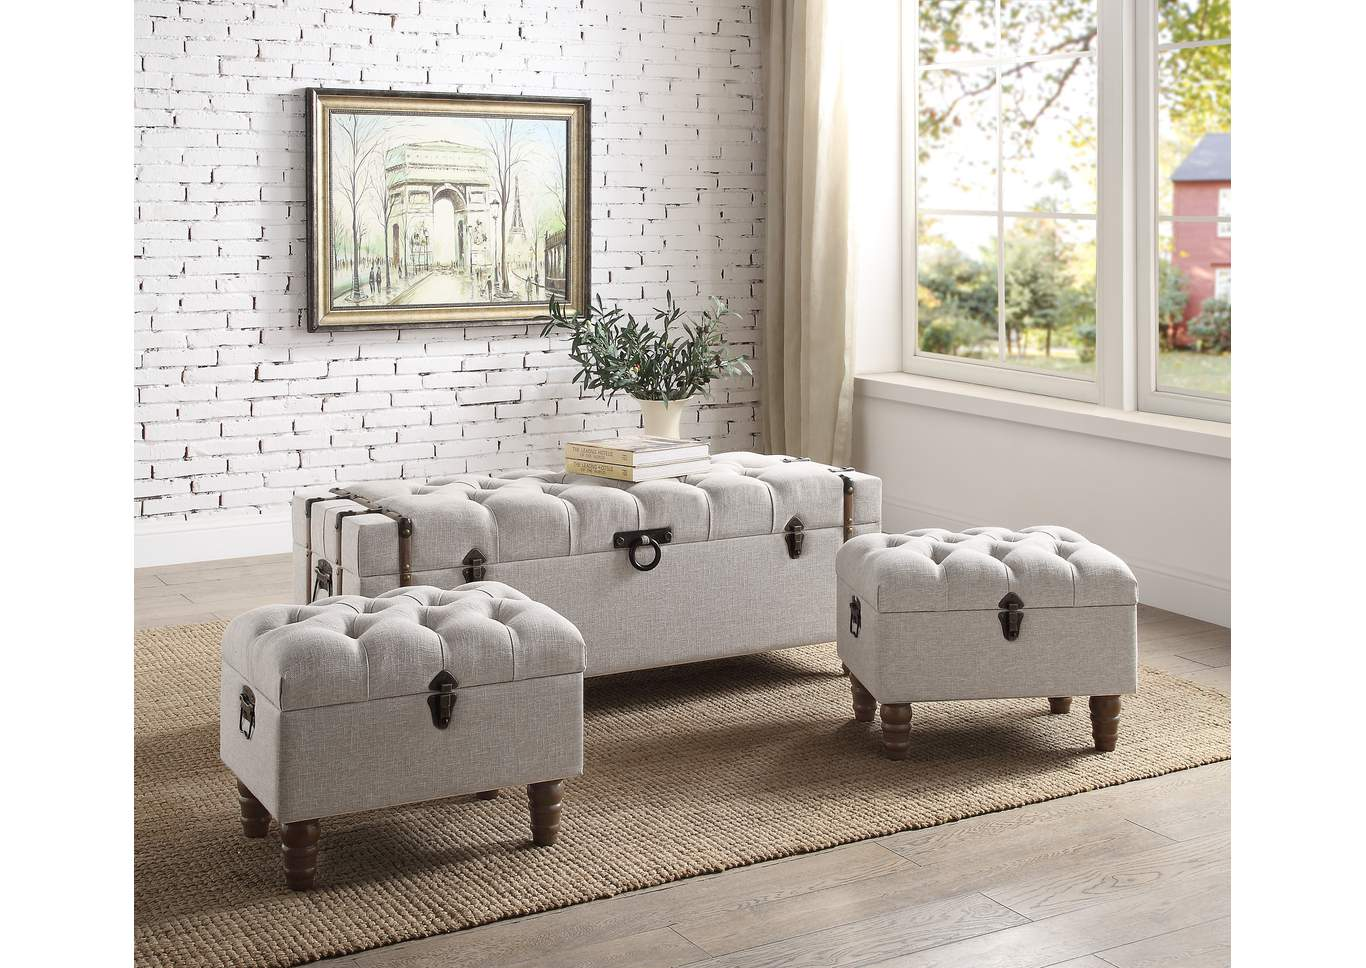 Enjoyable Ivan Smith Sachi 3 Piece Storage Ottoman Set Gmtry Best Dining Table And Chair Ideas Images Gmtryco